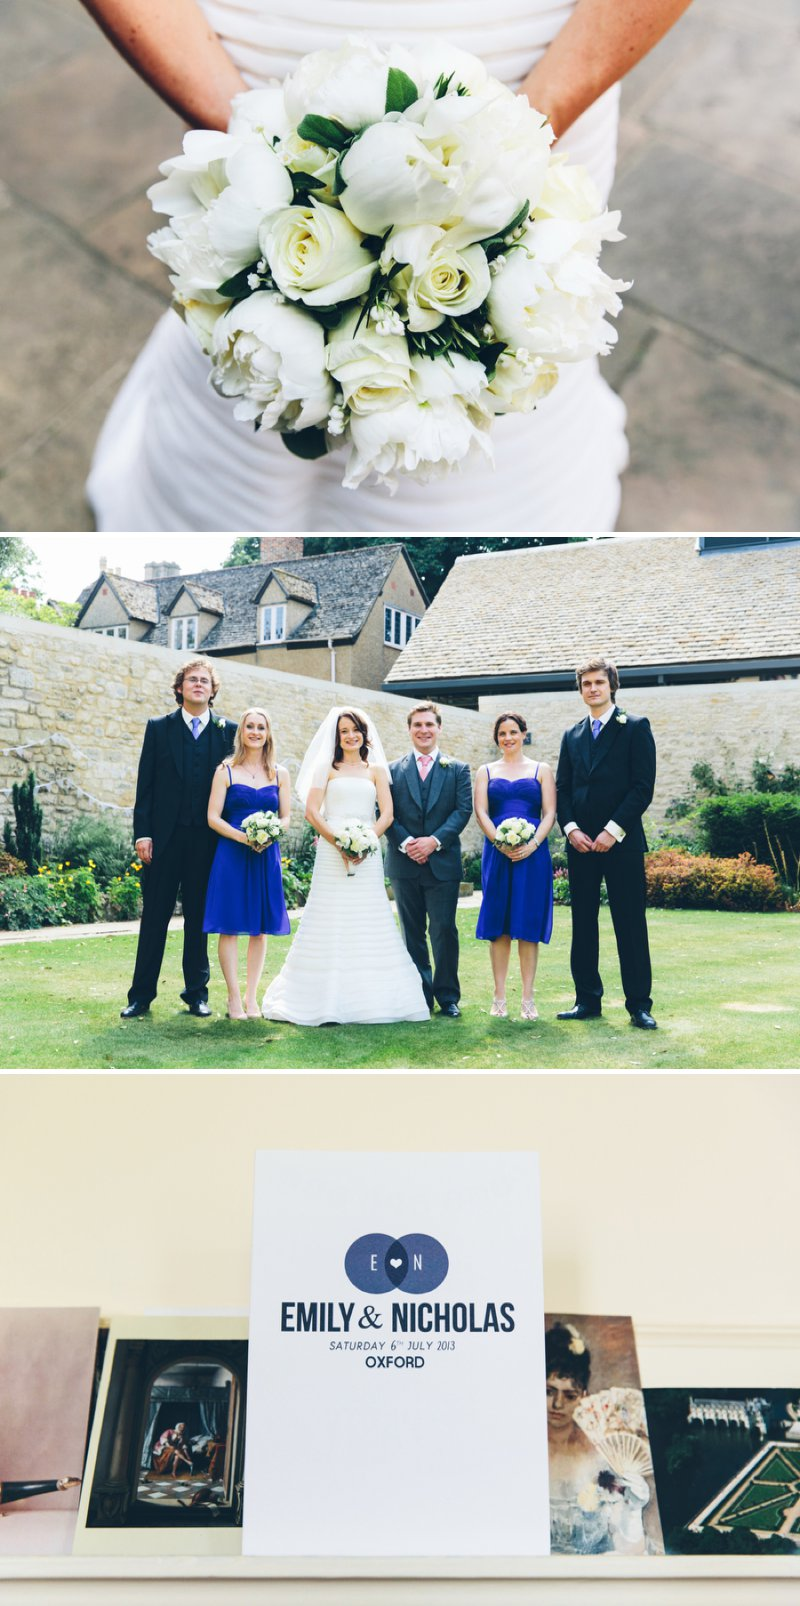 Elegant Contemporary Wedding At The Bodleian Library Queens College Oxford With Bride In Ulanova By Pronovias And Jimmy Choo Heels With Groom In Suit By Cad And The Dandy And Bridesmaids In Royal Blue Images By Mister Phill 1